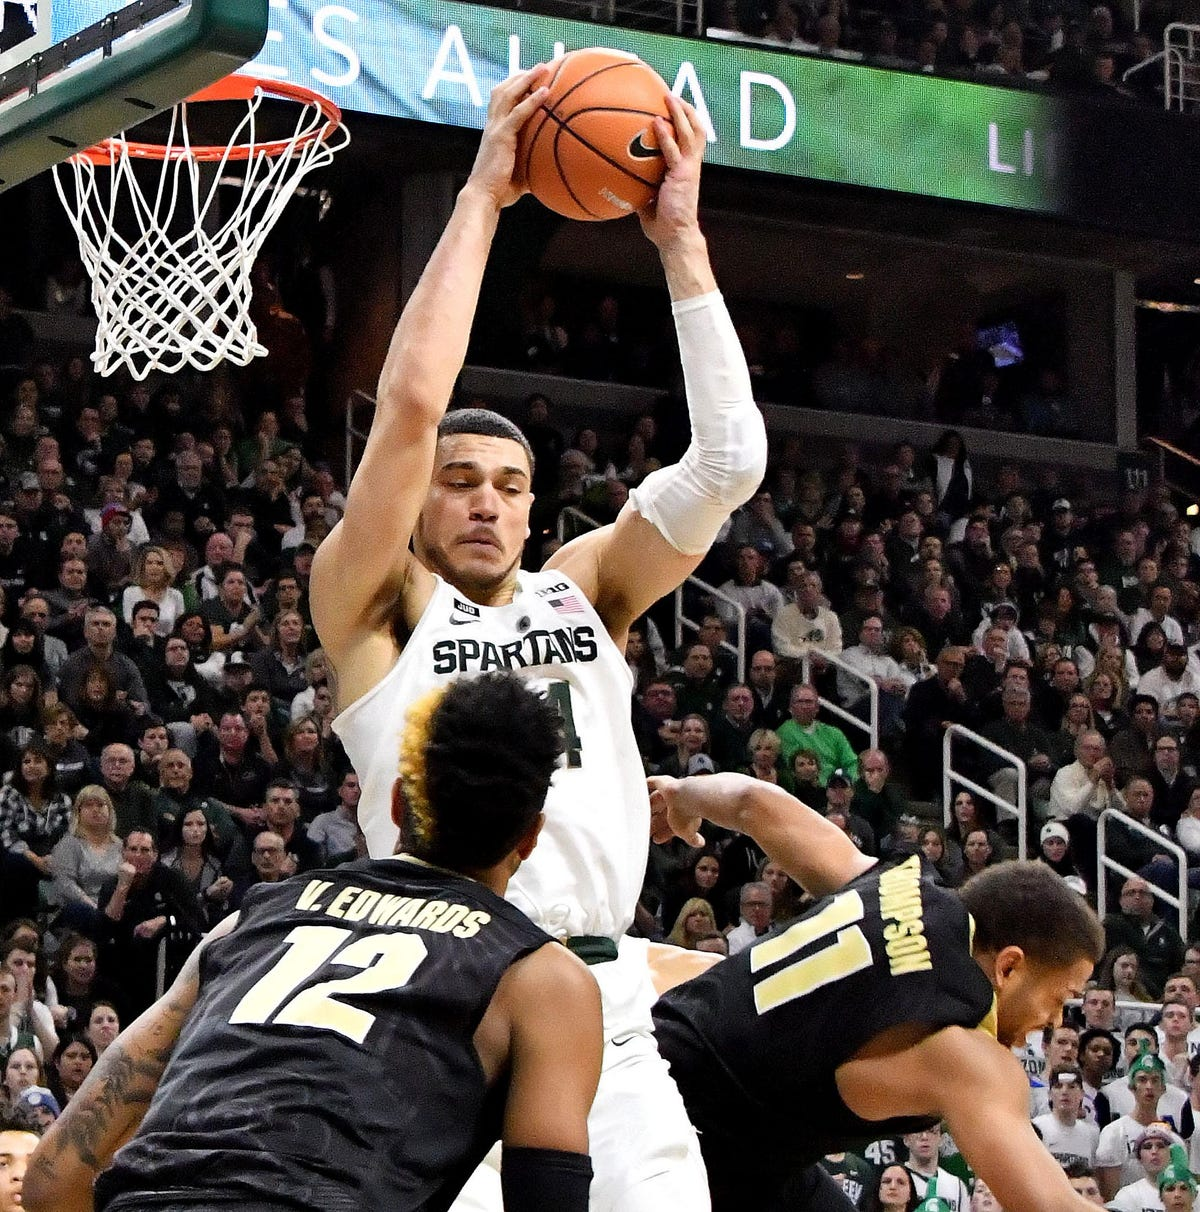 With big win, MSU gives itself a chance in Big Ten race